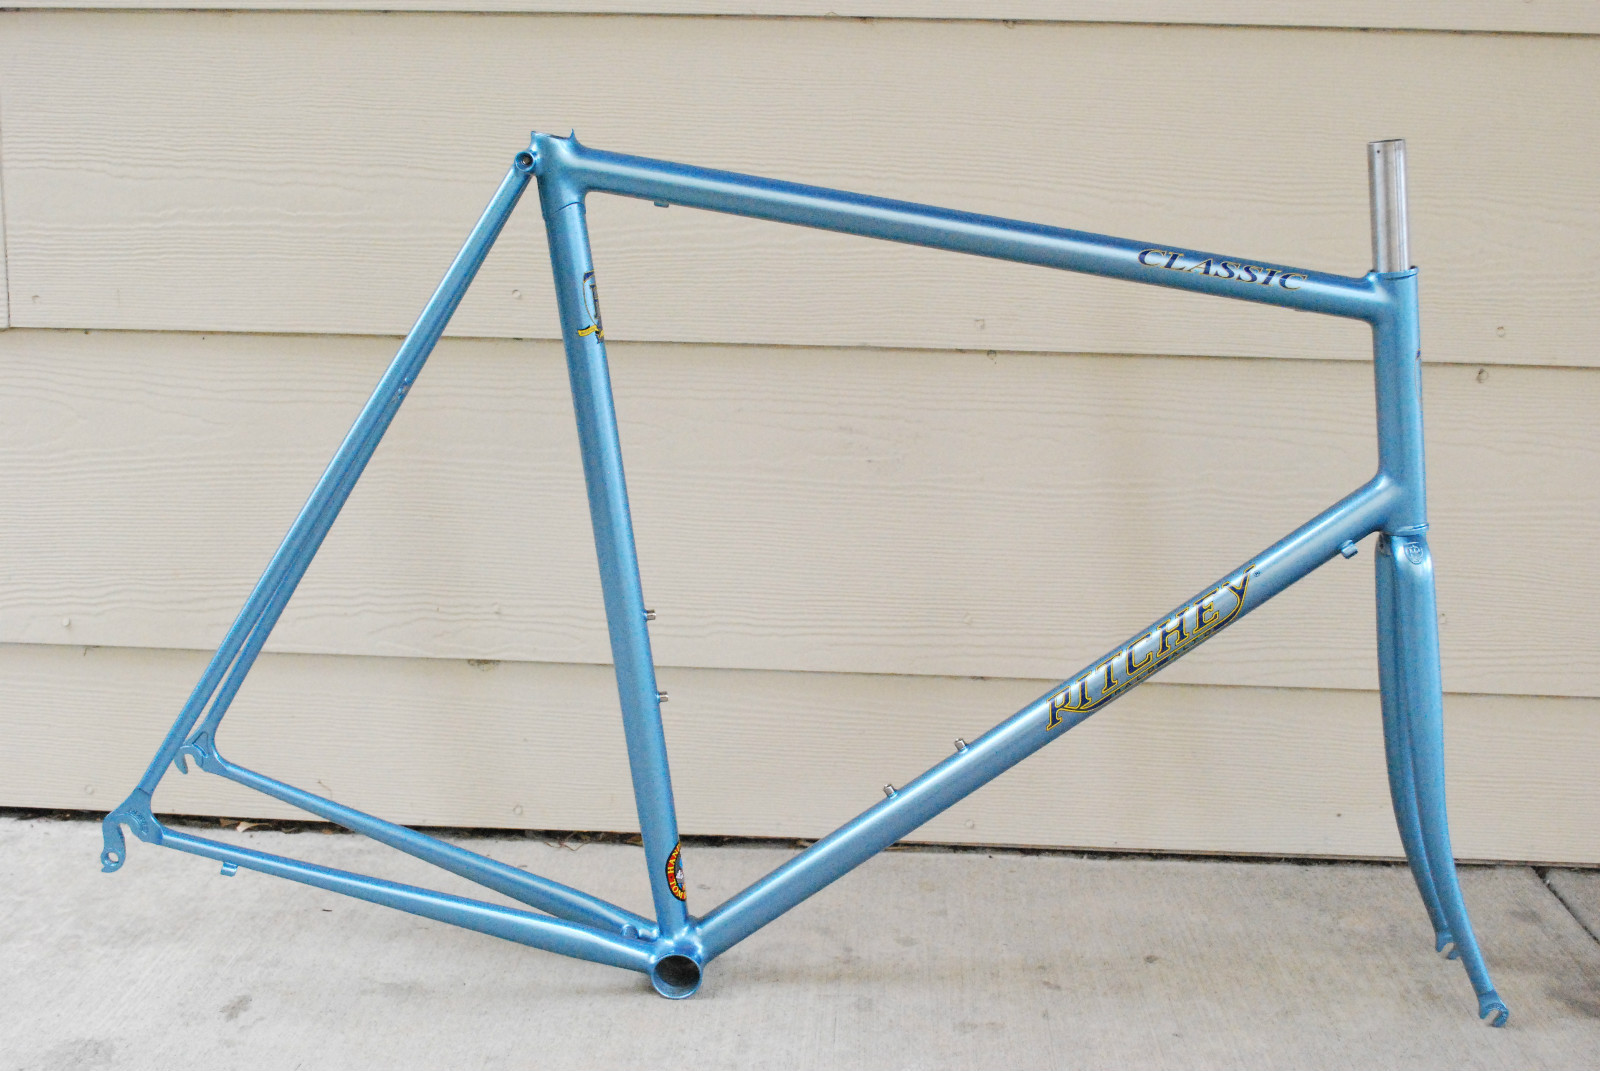 Tom Ritchey 40th Anniversary Limited Edition